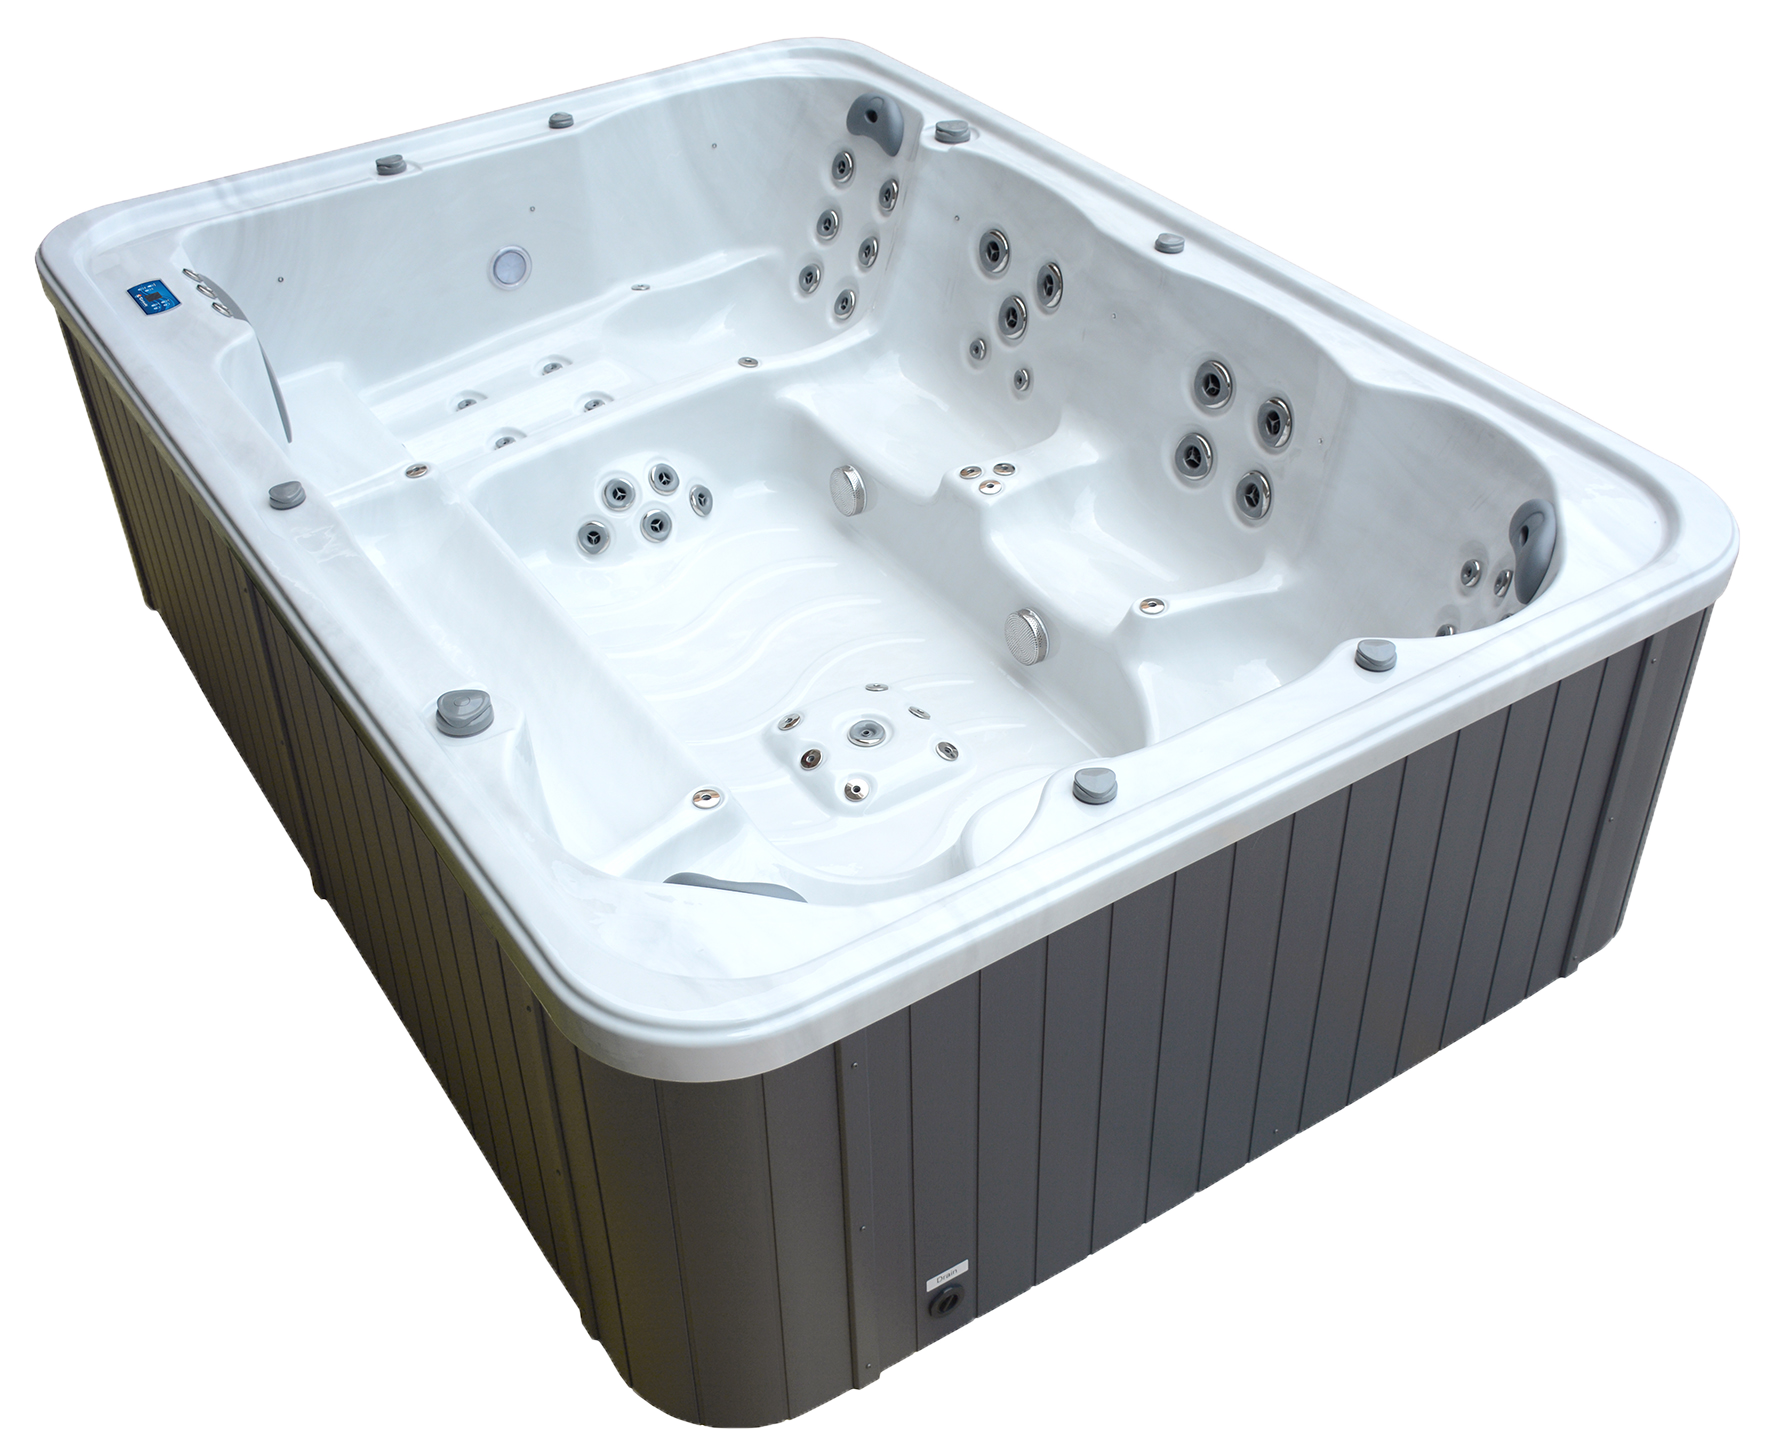 acclaim hot tub sideview